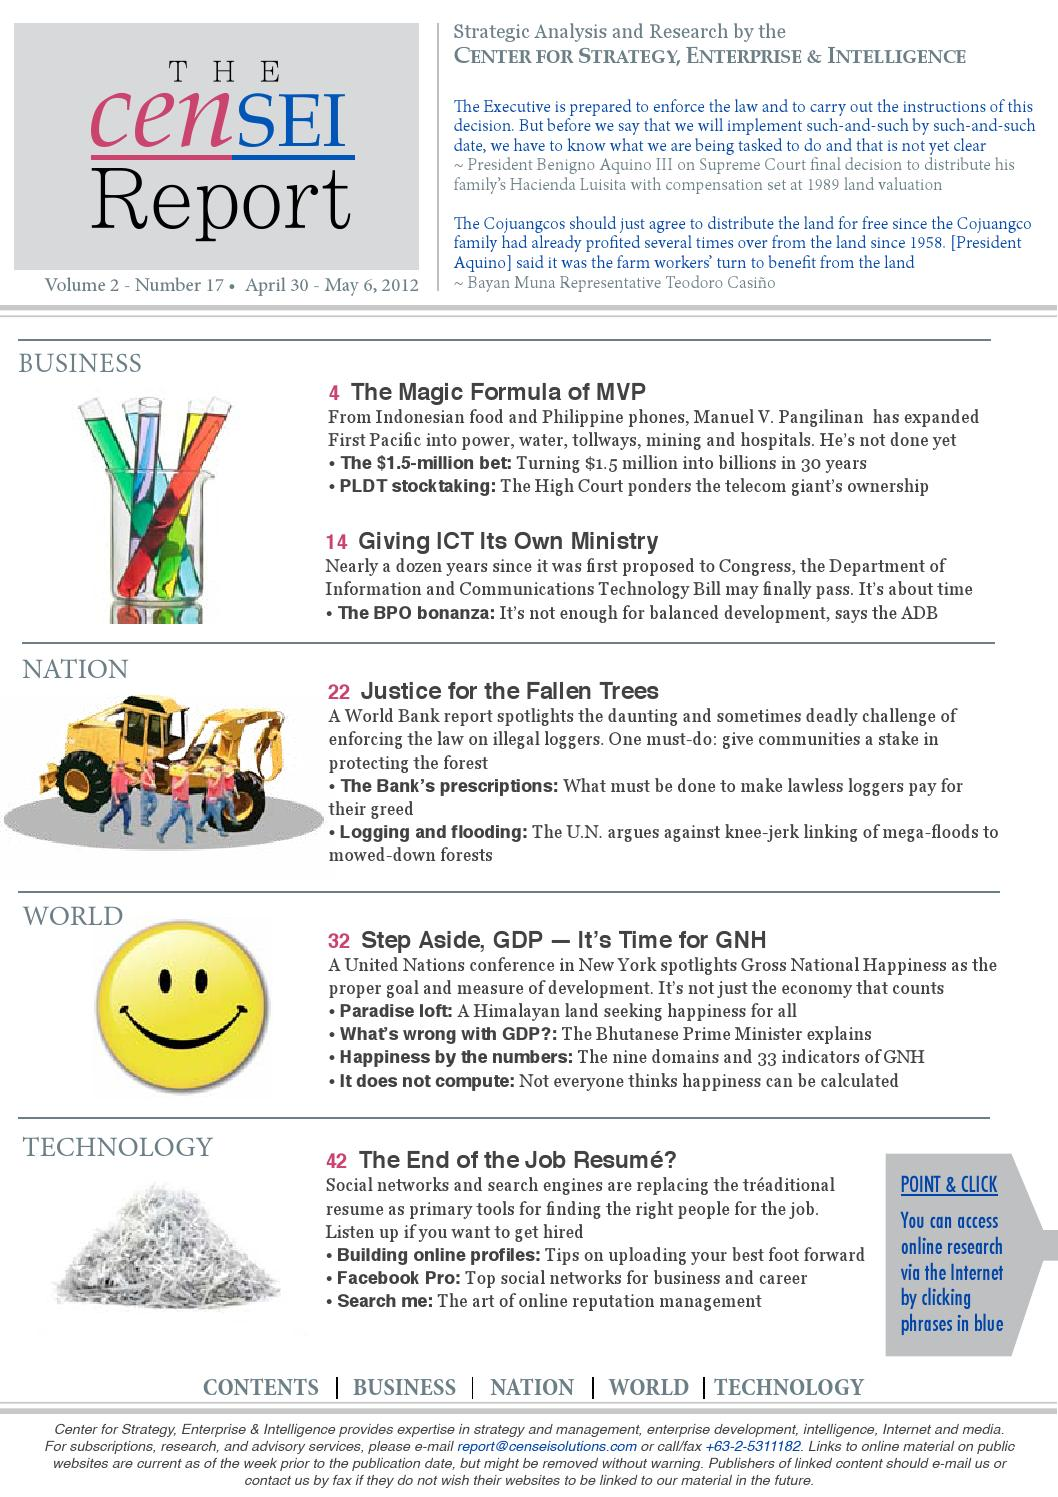 TCR Volume 2 Issue No 17 by The CenSEI Report - issuu